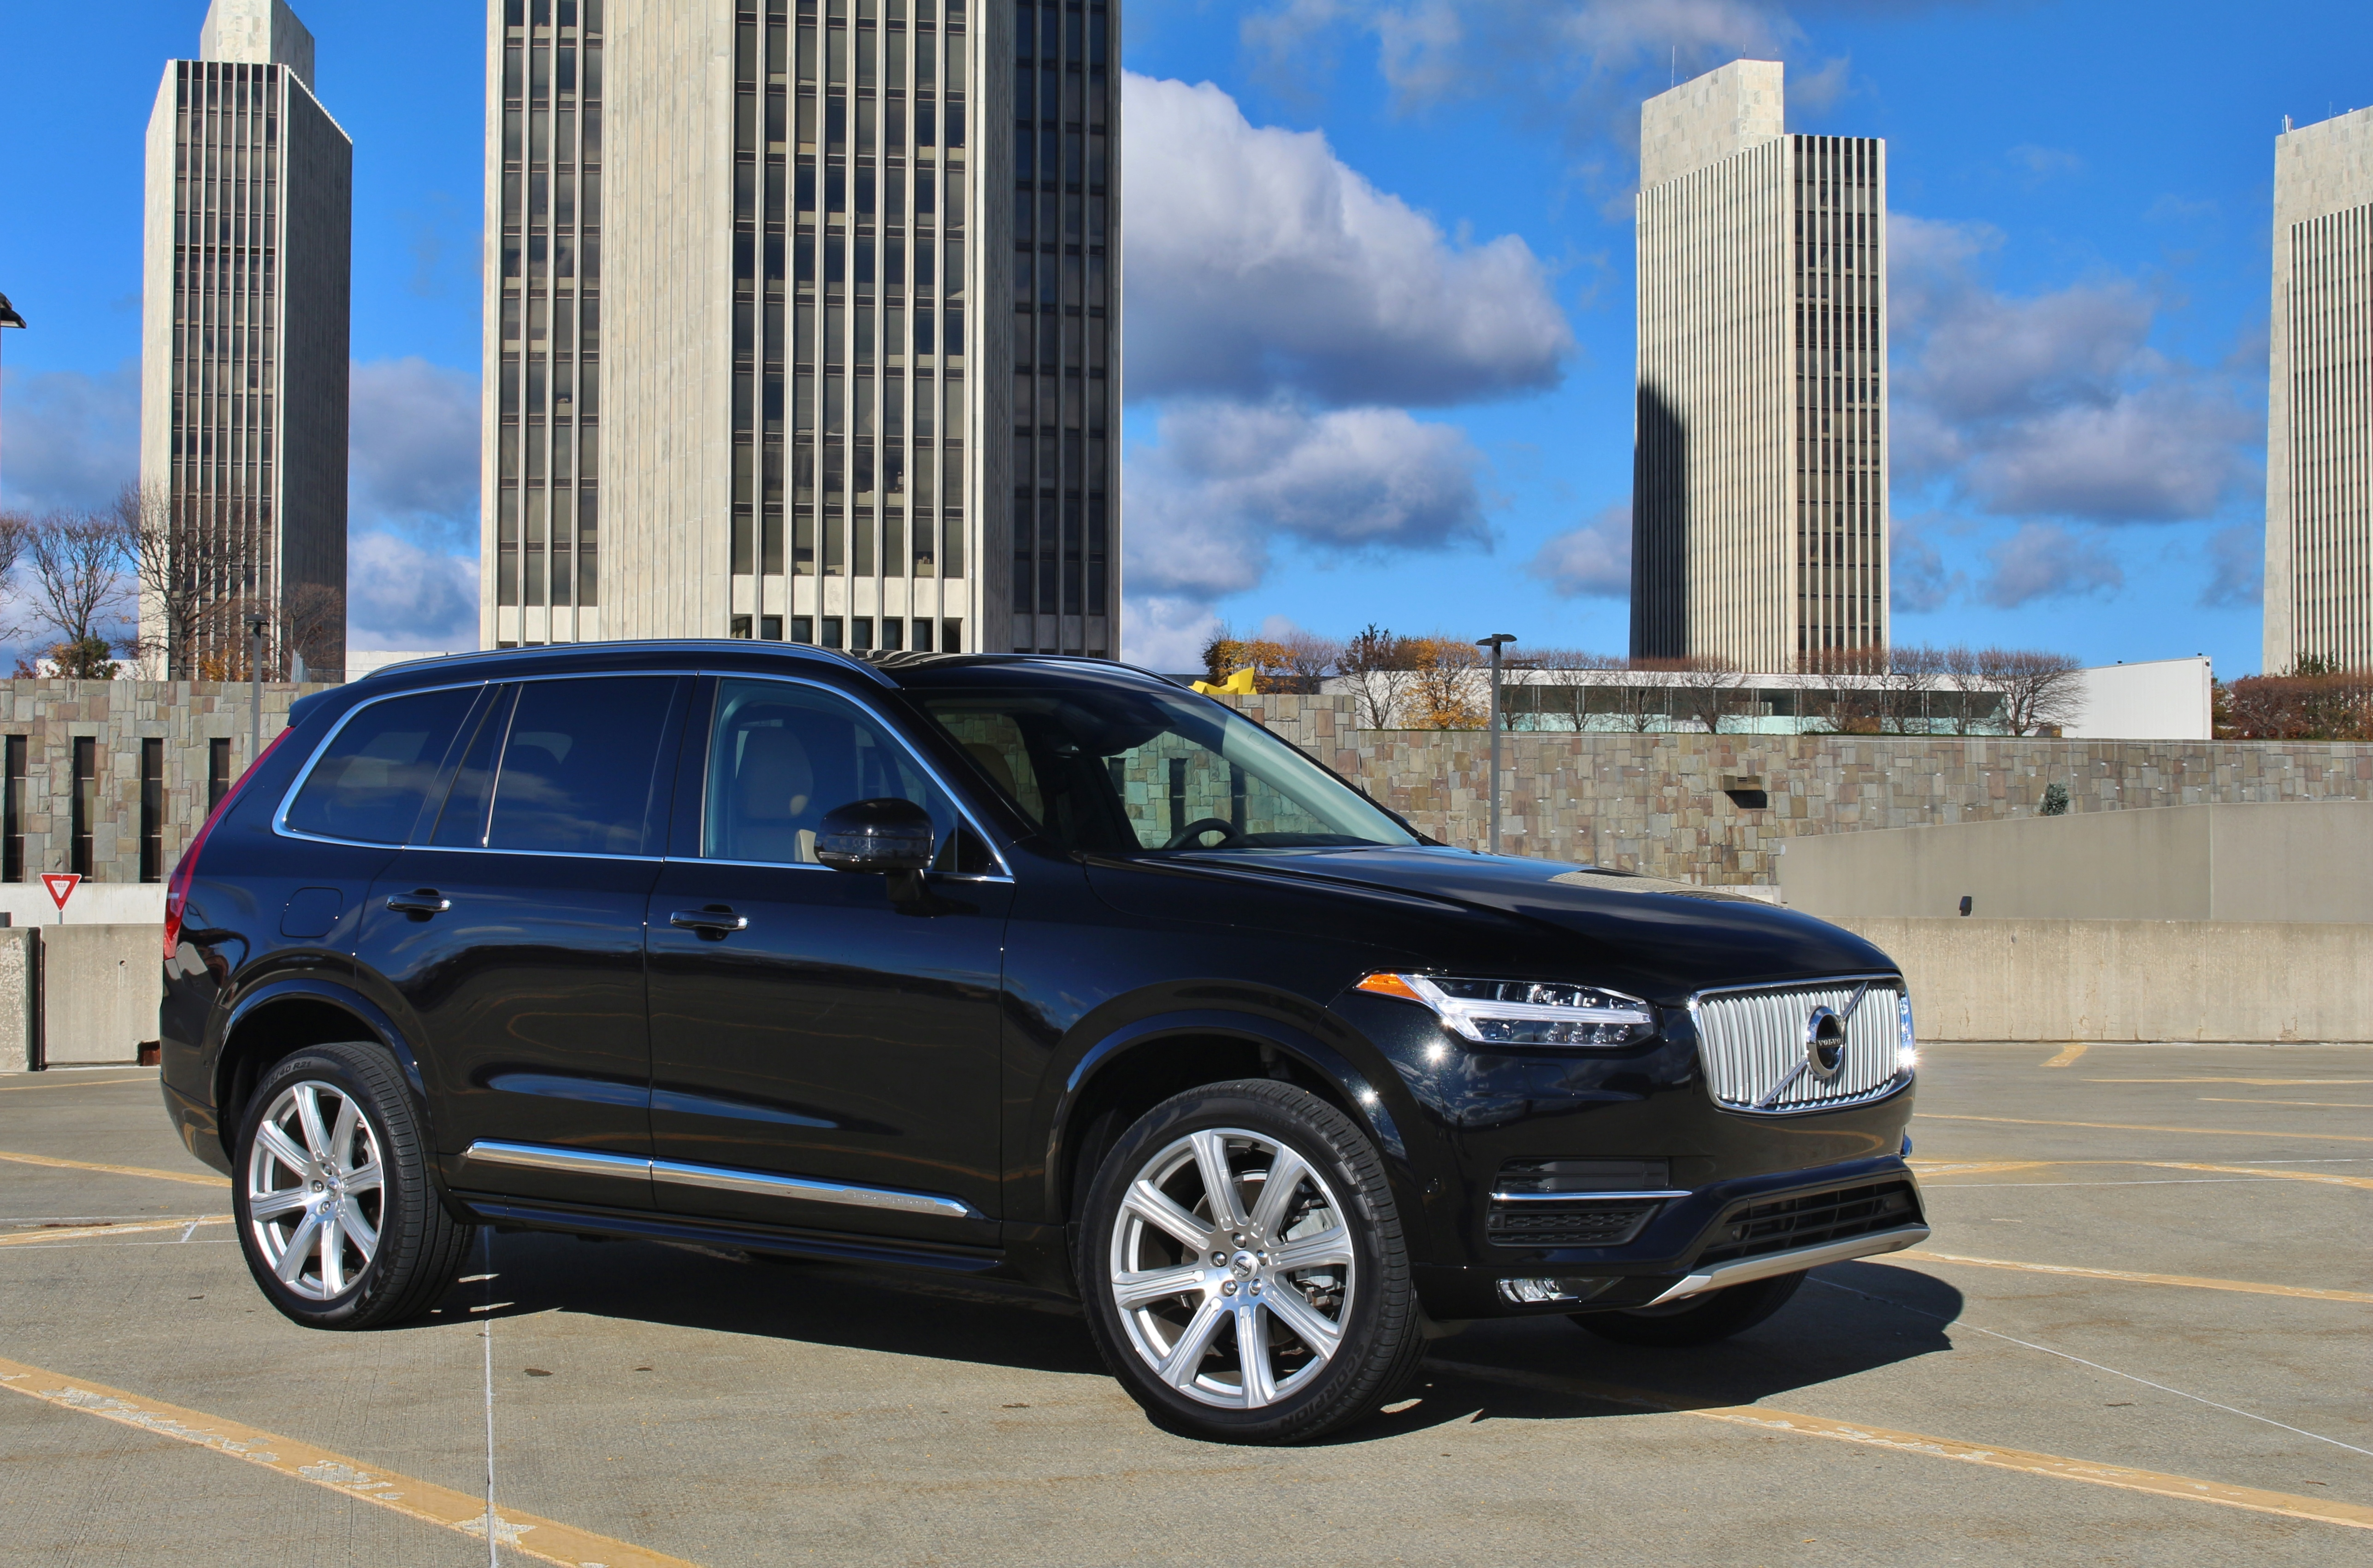 styling heard slip full suv volvo blend the segment across limited ve feel home run they like blog from that people of sameness is luxury several brands together i